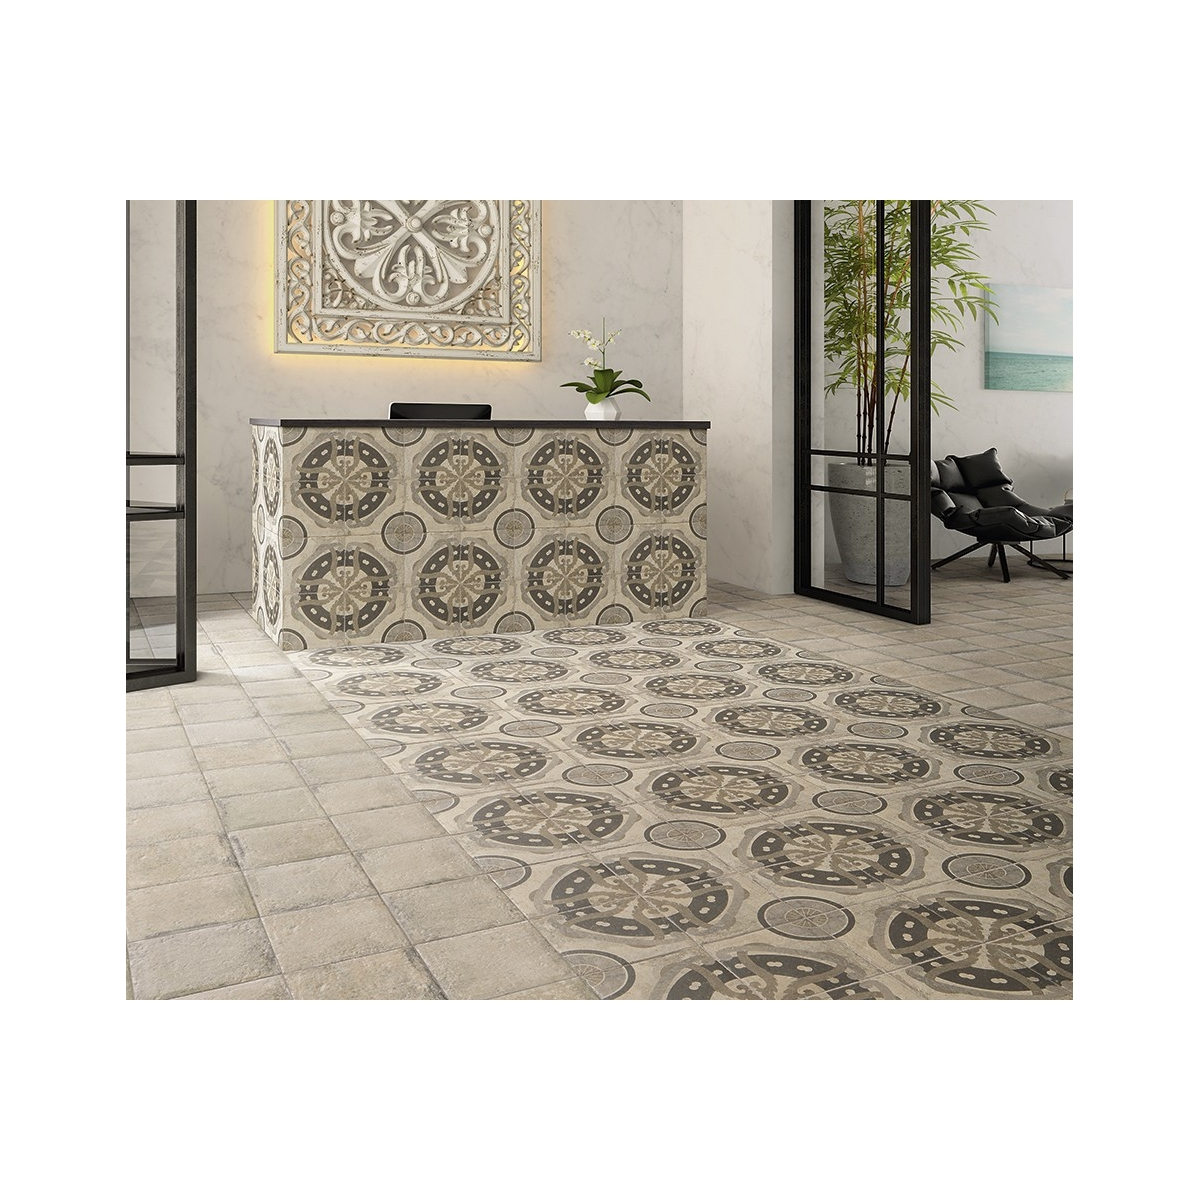 Norland Beige 20x20 (caja 1m2) Serie Norland